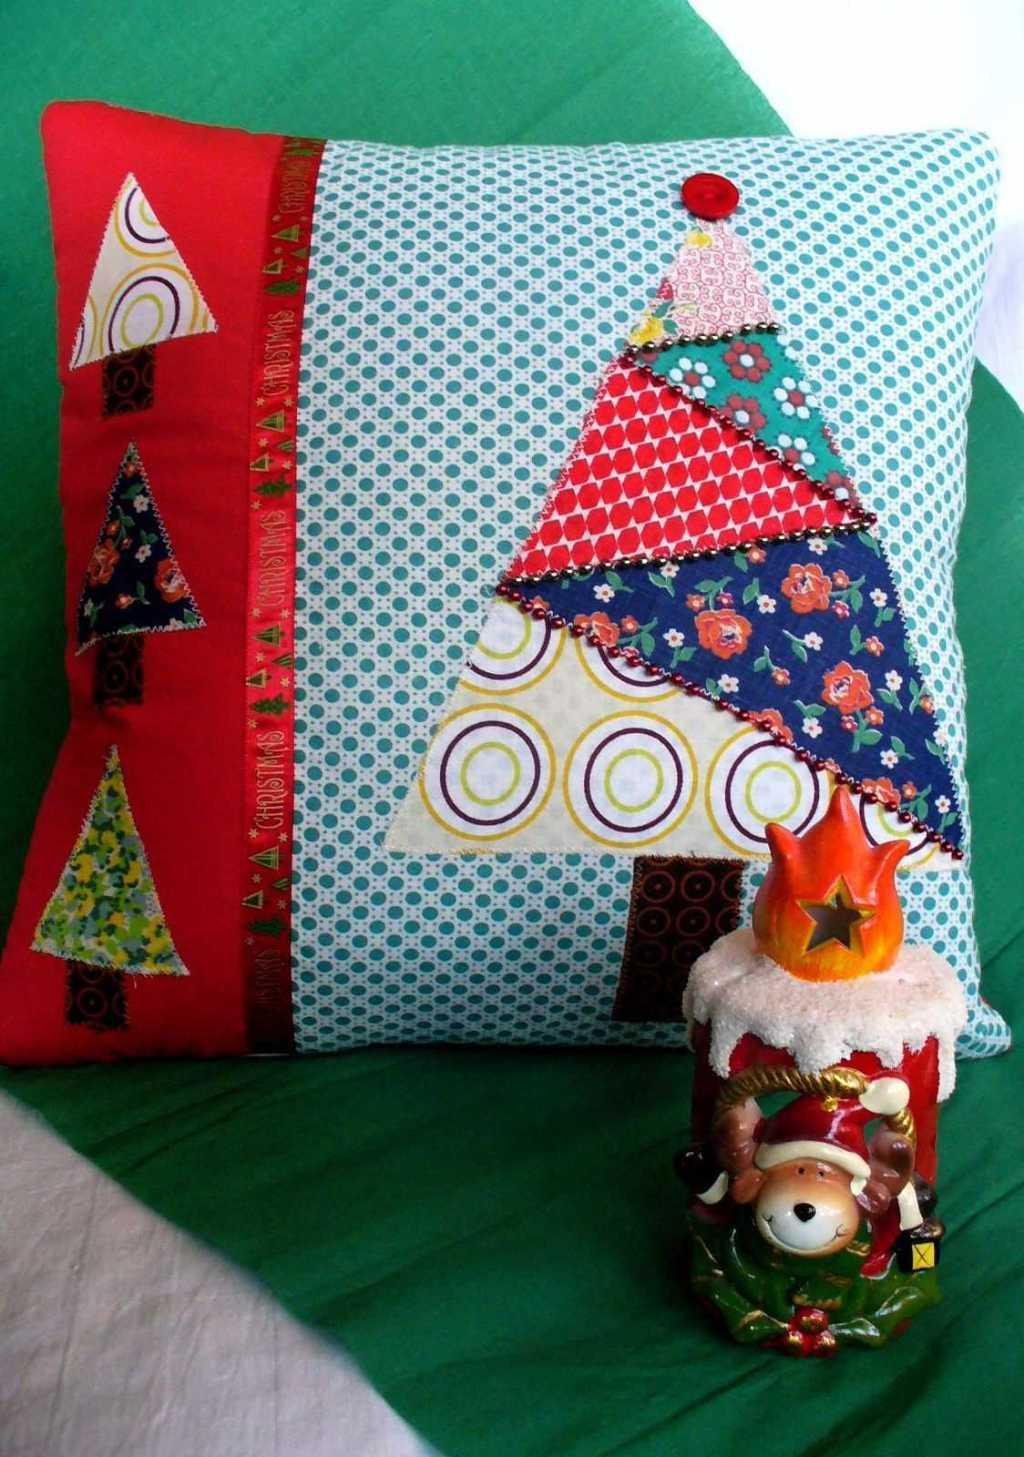 Christmas Cushions: 60 Ideas for Decorating and How to Make 39